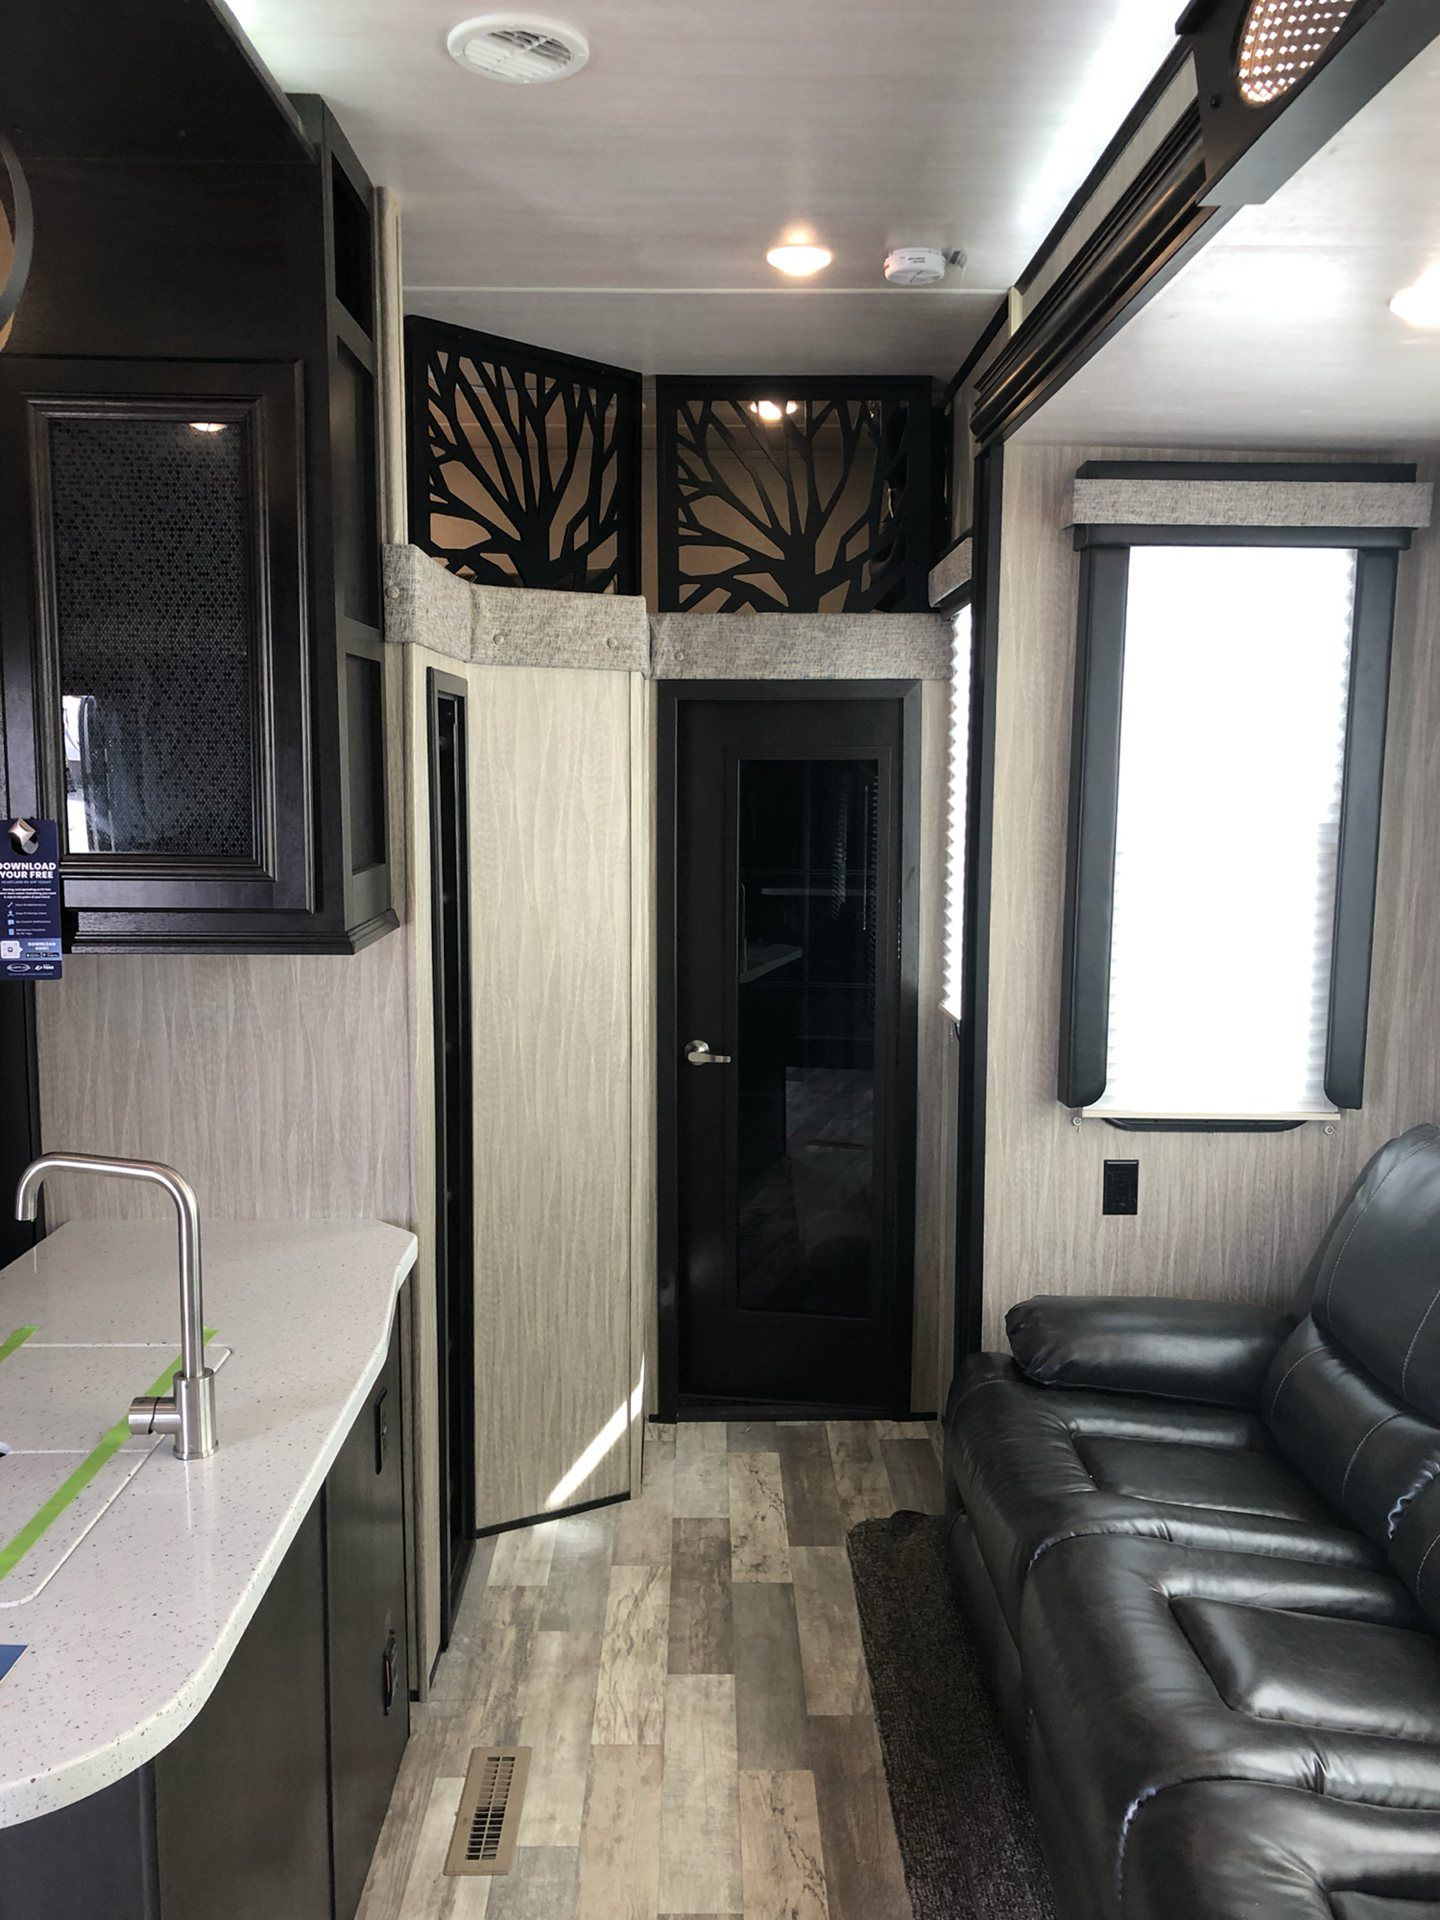 2019 Heartland Rvs RW 413 in Wolfforth, Texas - Photo 4